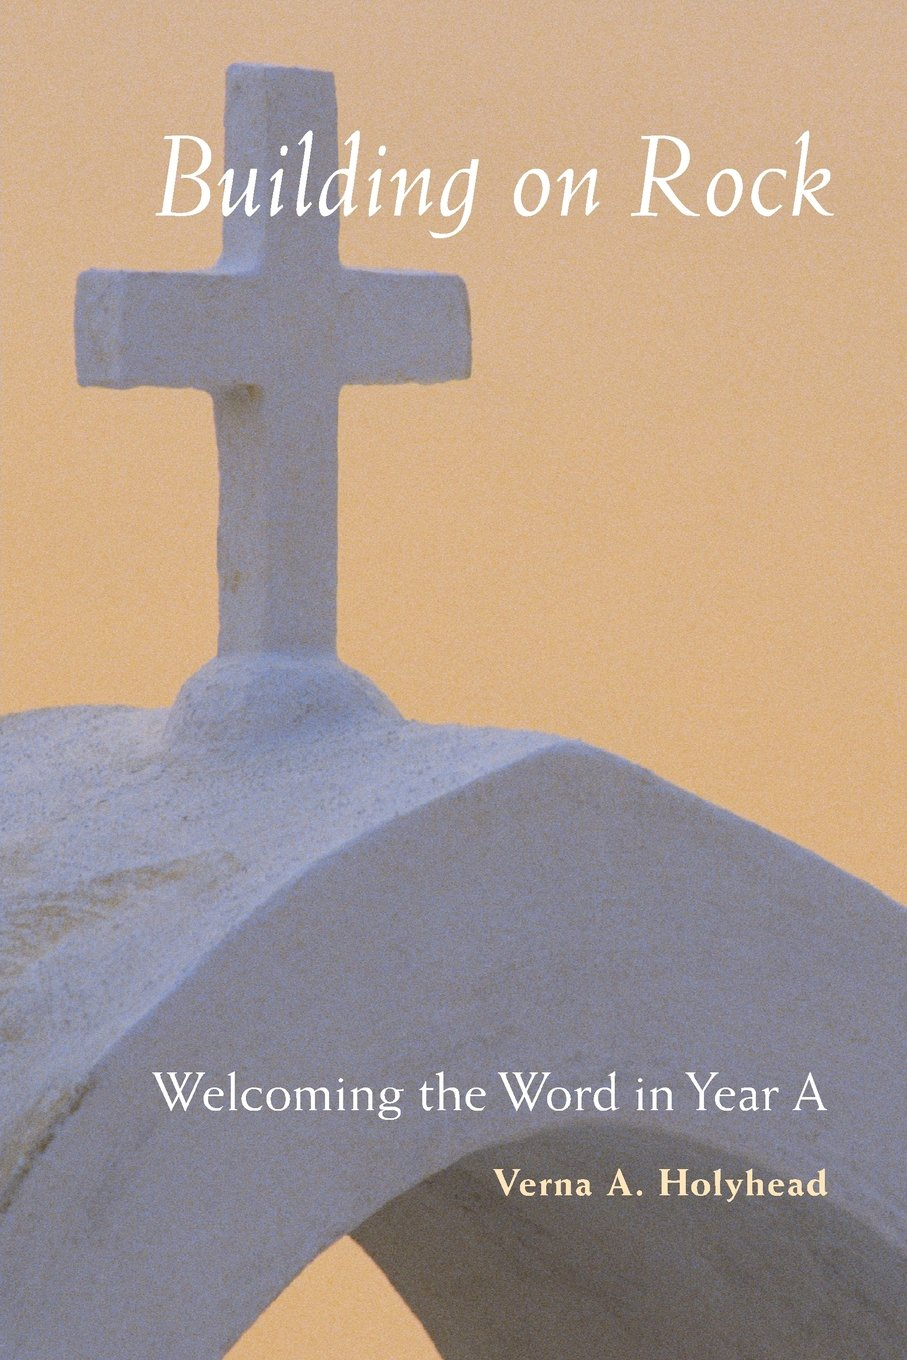 Download Welcoming the Word in Year A: Building on Rock pdf